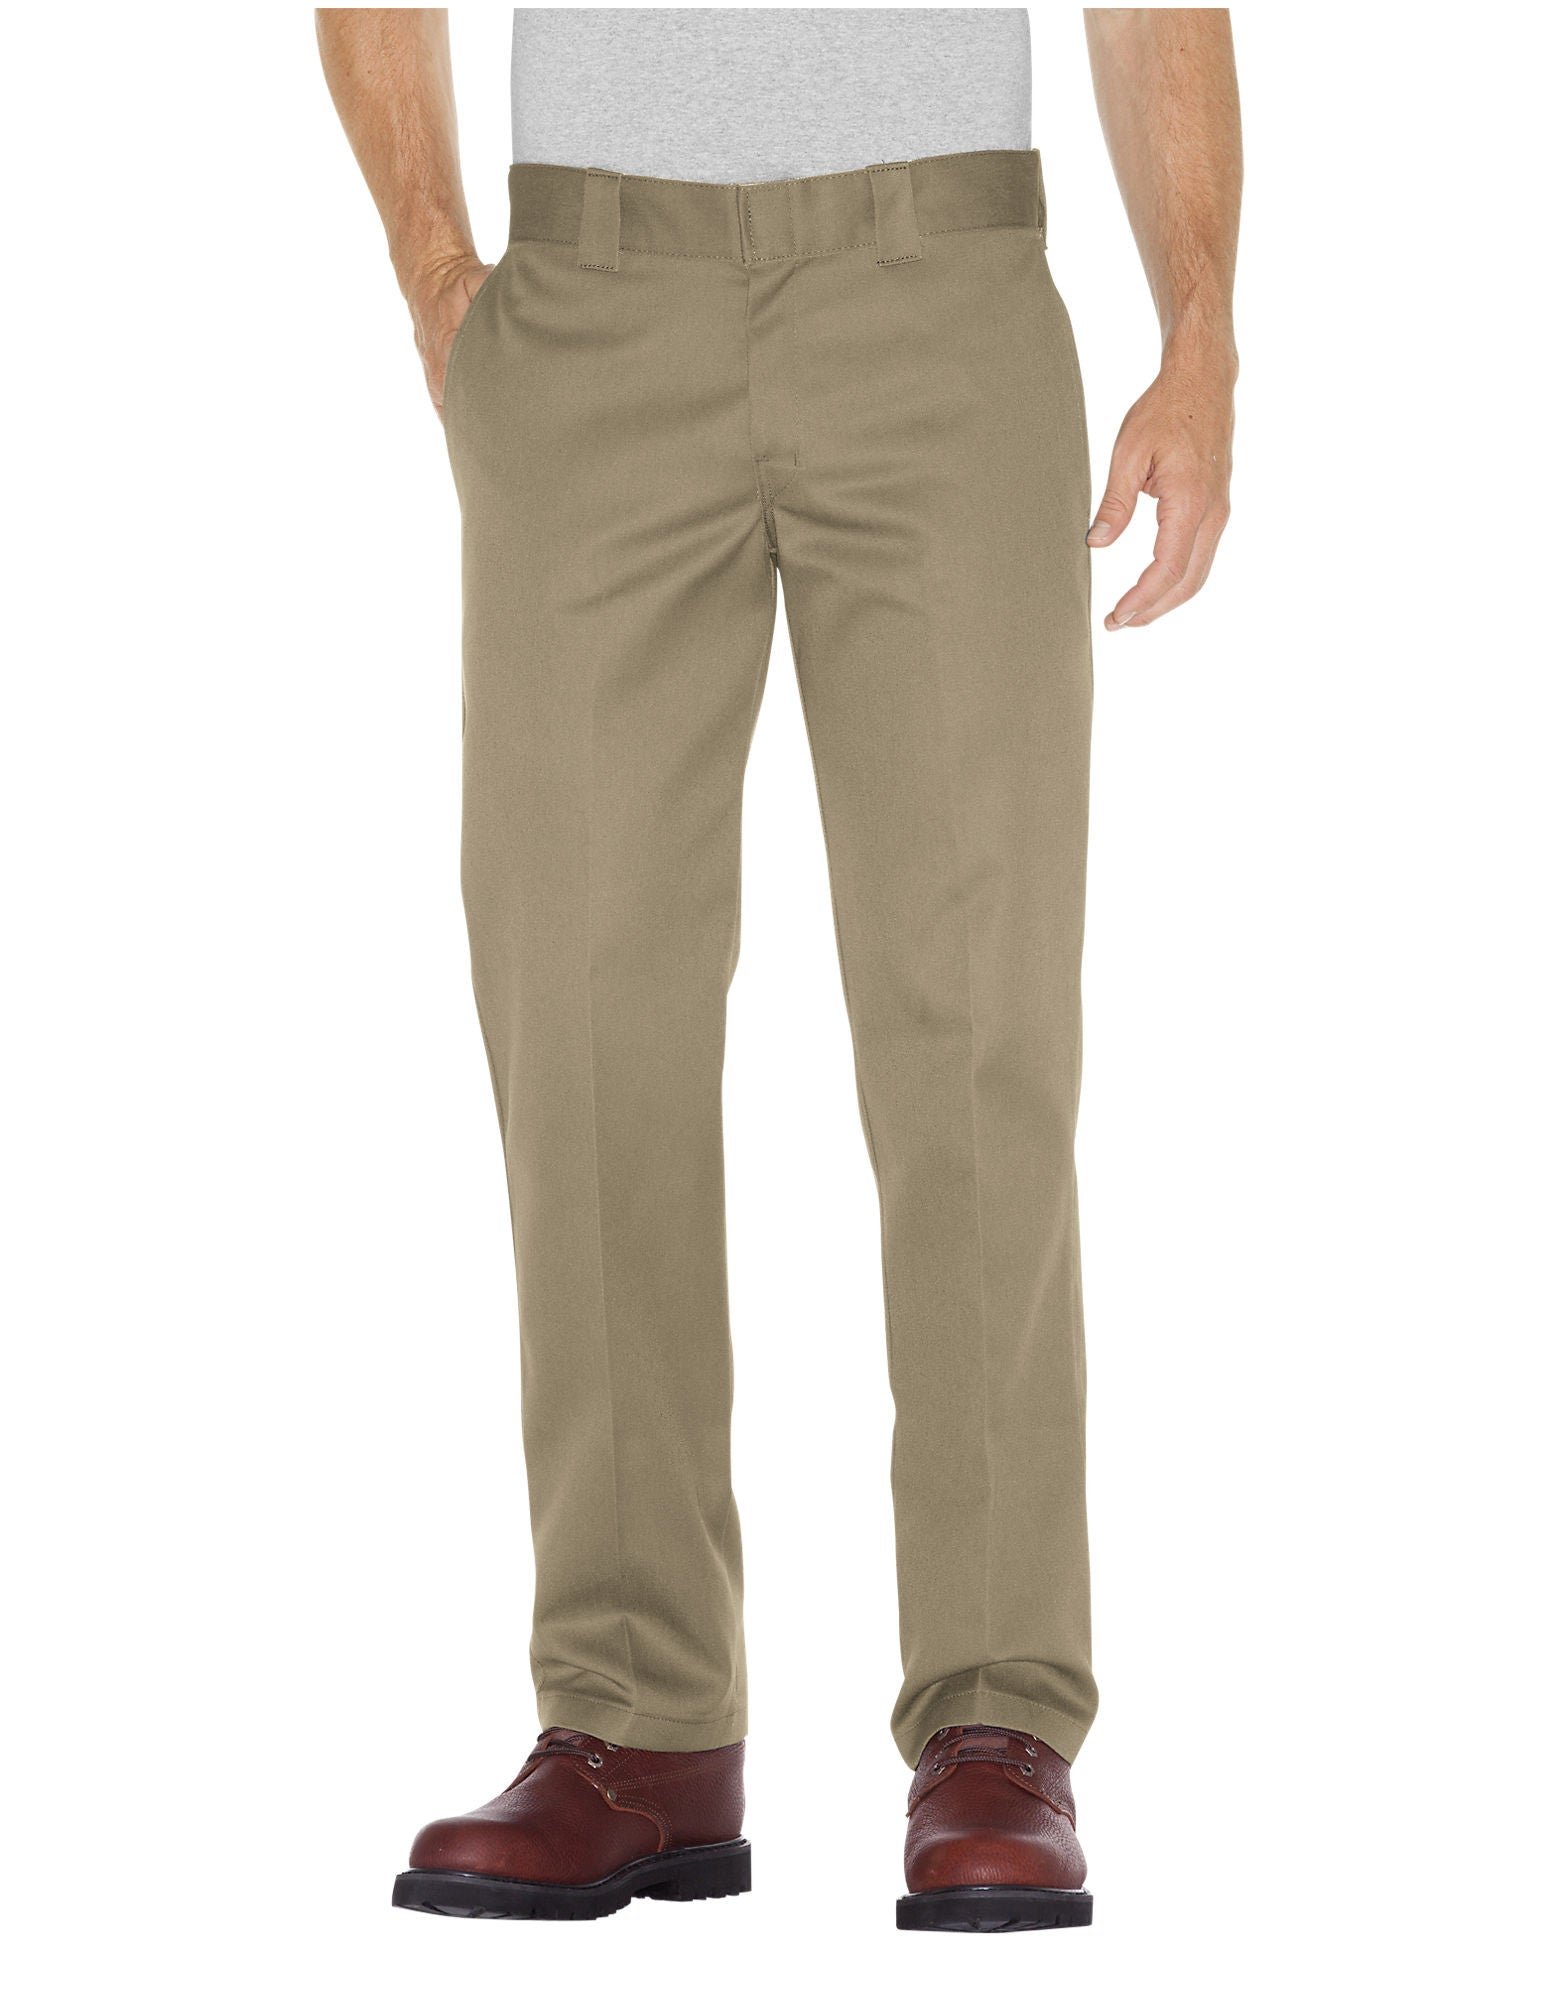 6193623fe85 Dickies WP 873 Slim Straight Work Pants Khaki – Famous Rock Shop